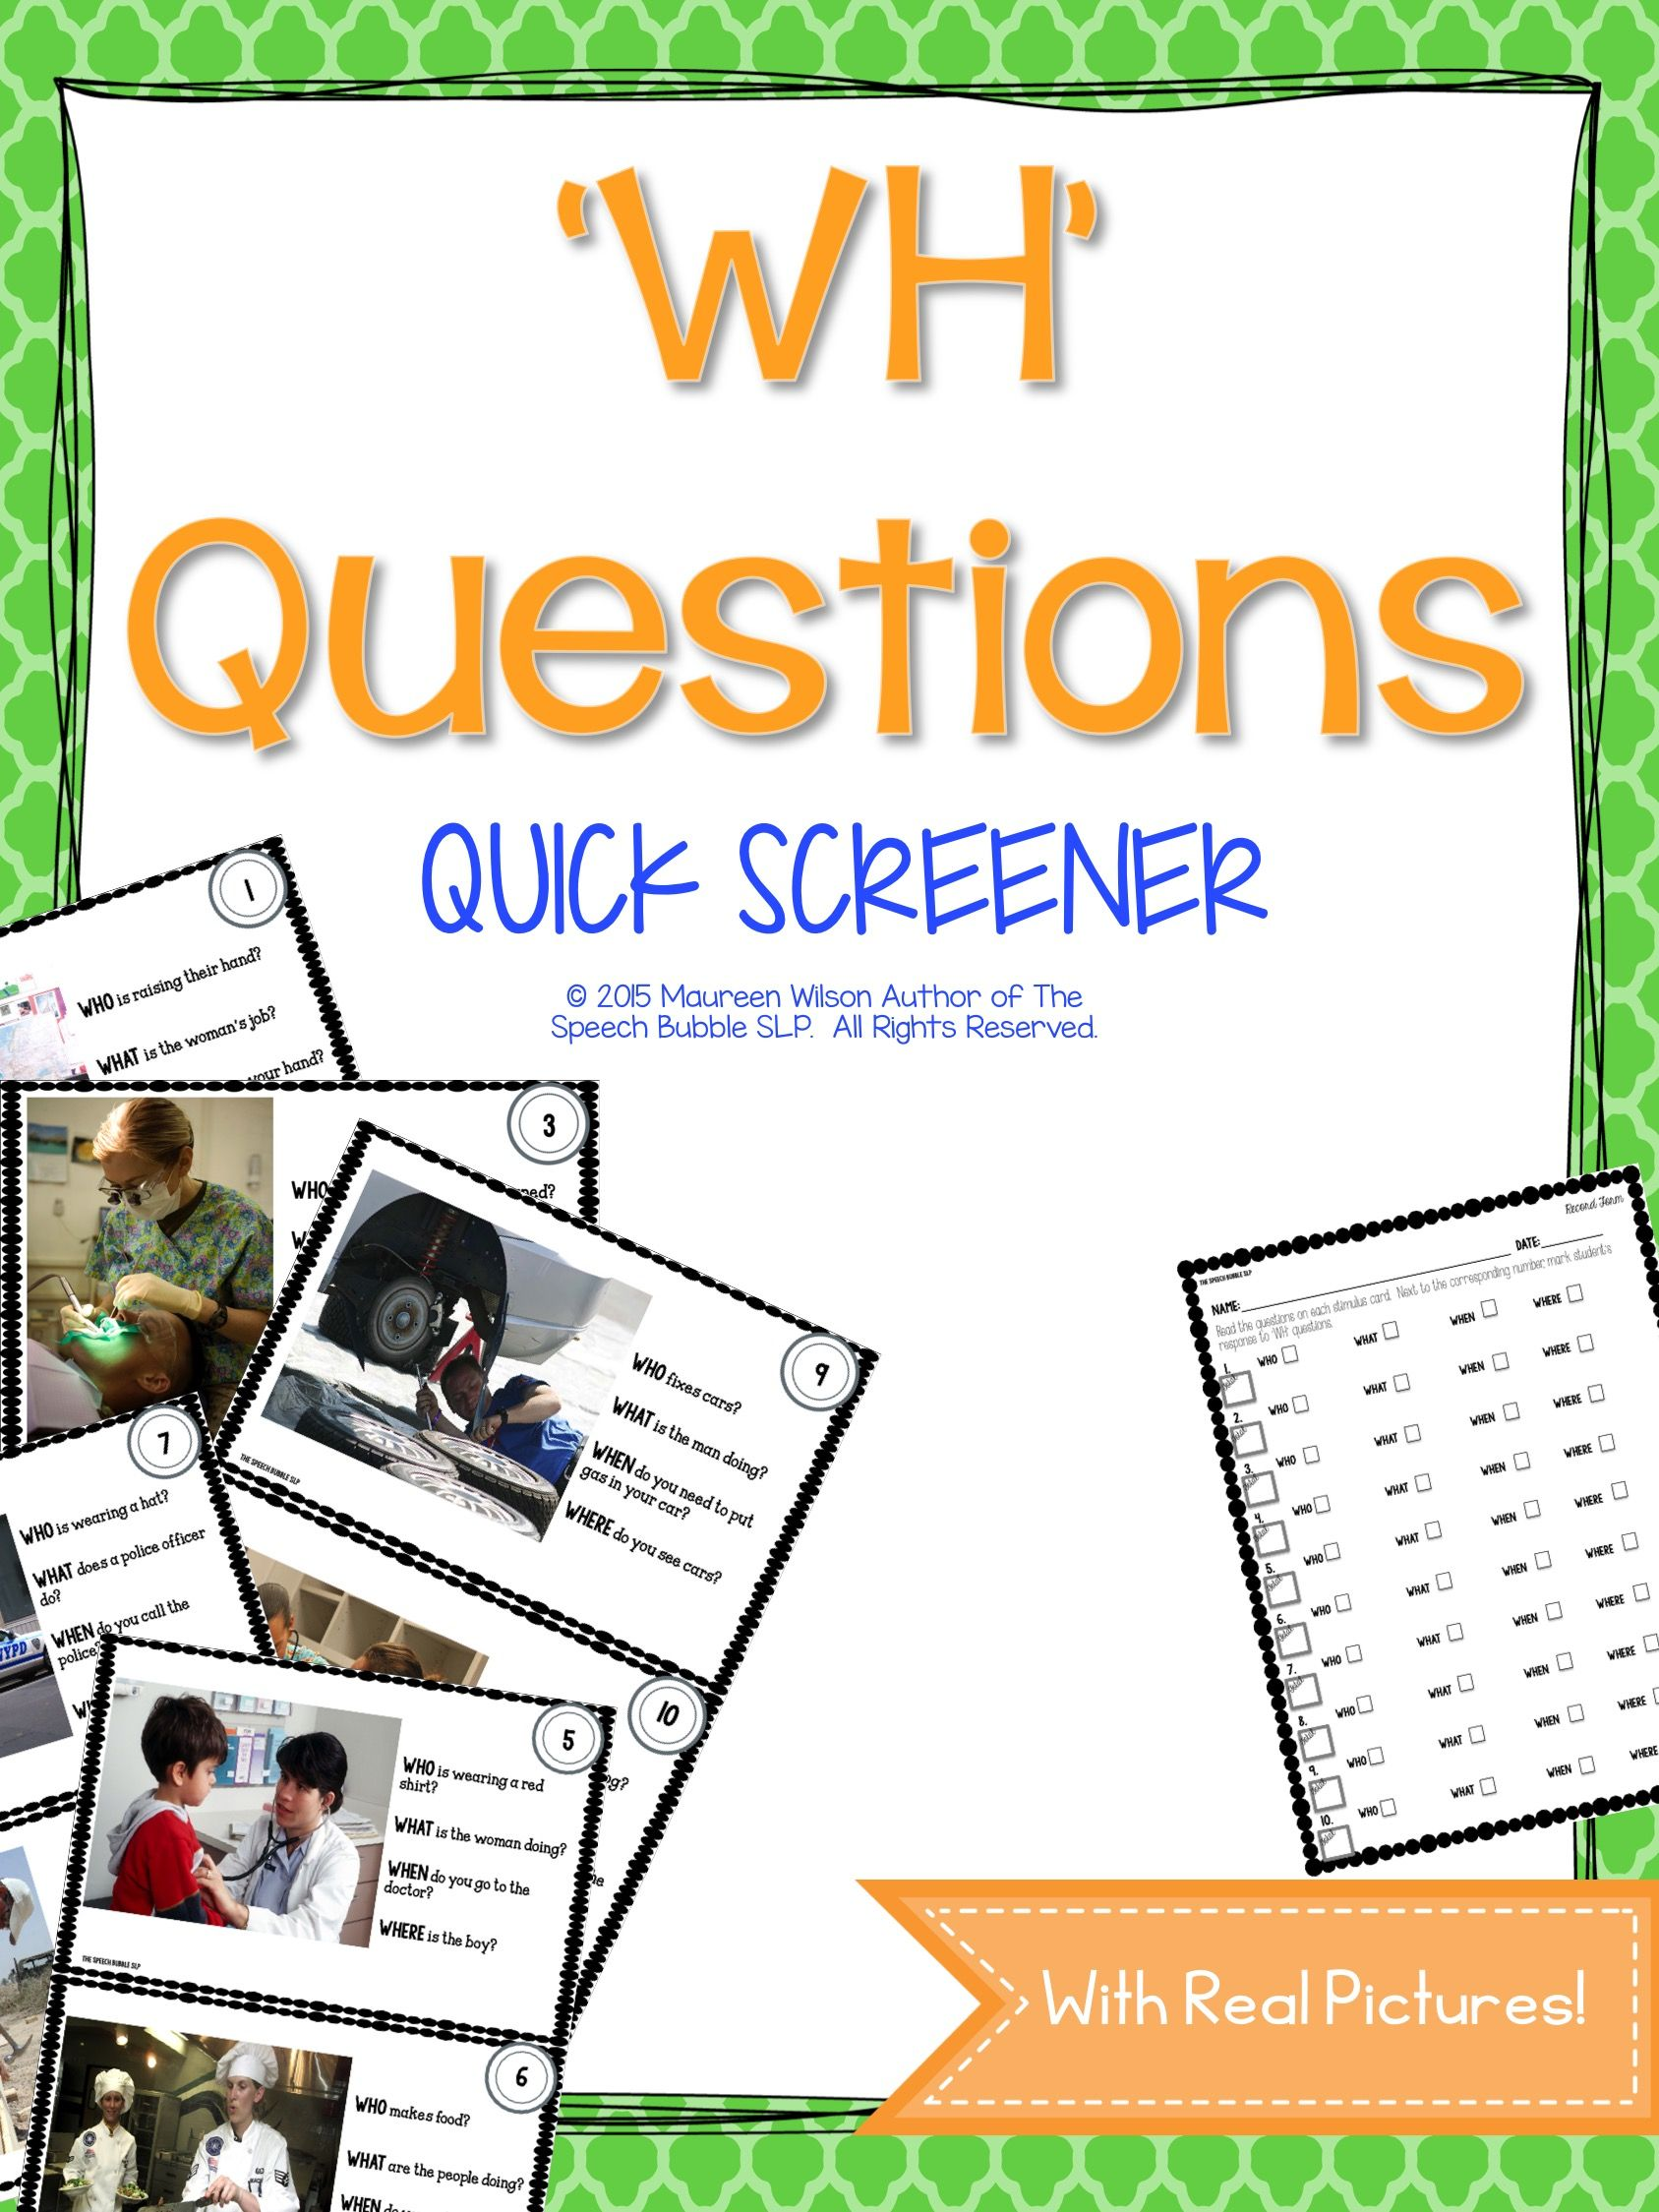 The Wh Question Screener